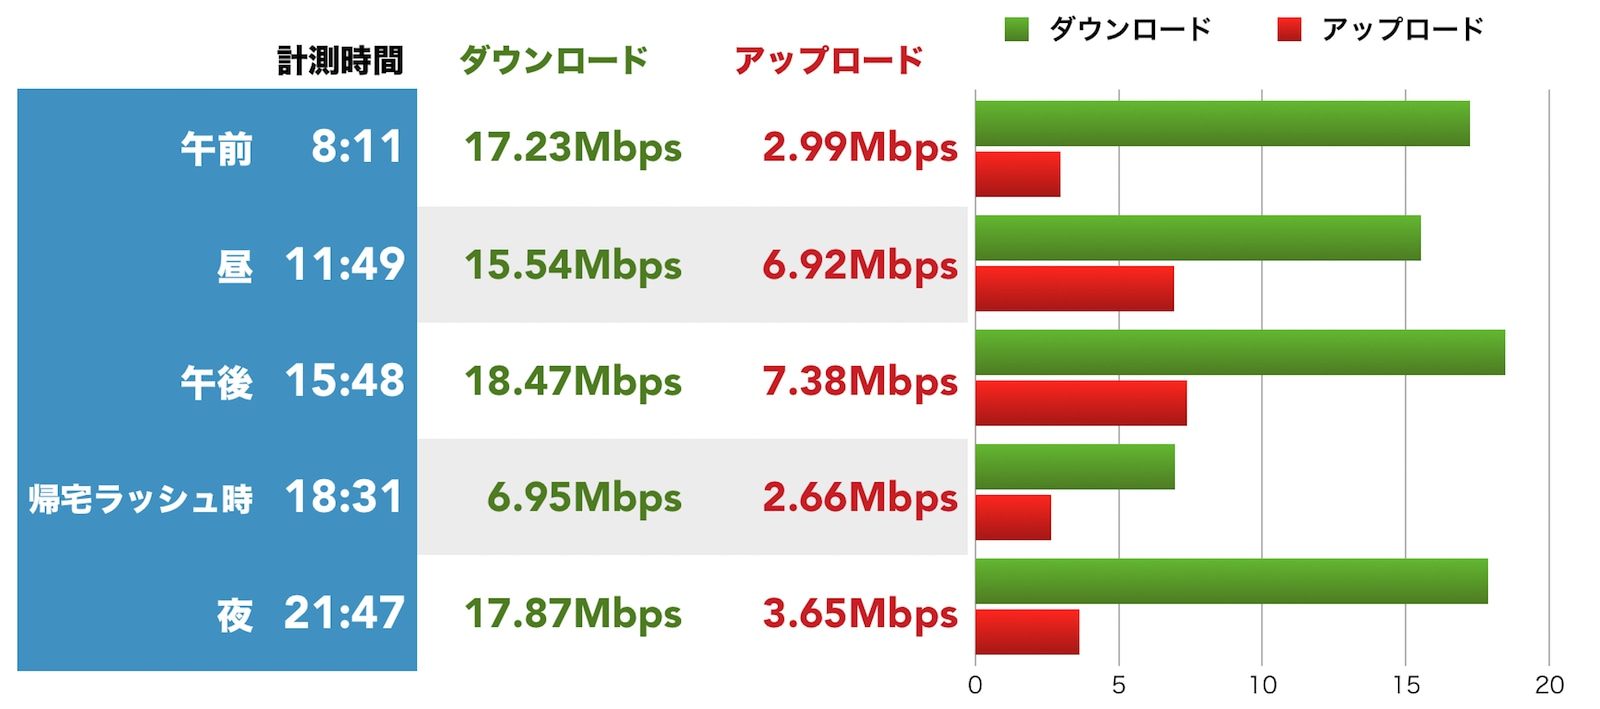 rakuten-mobile-speed-graph